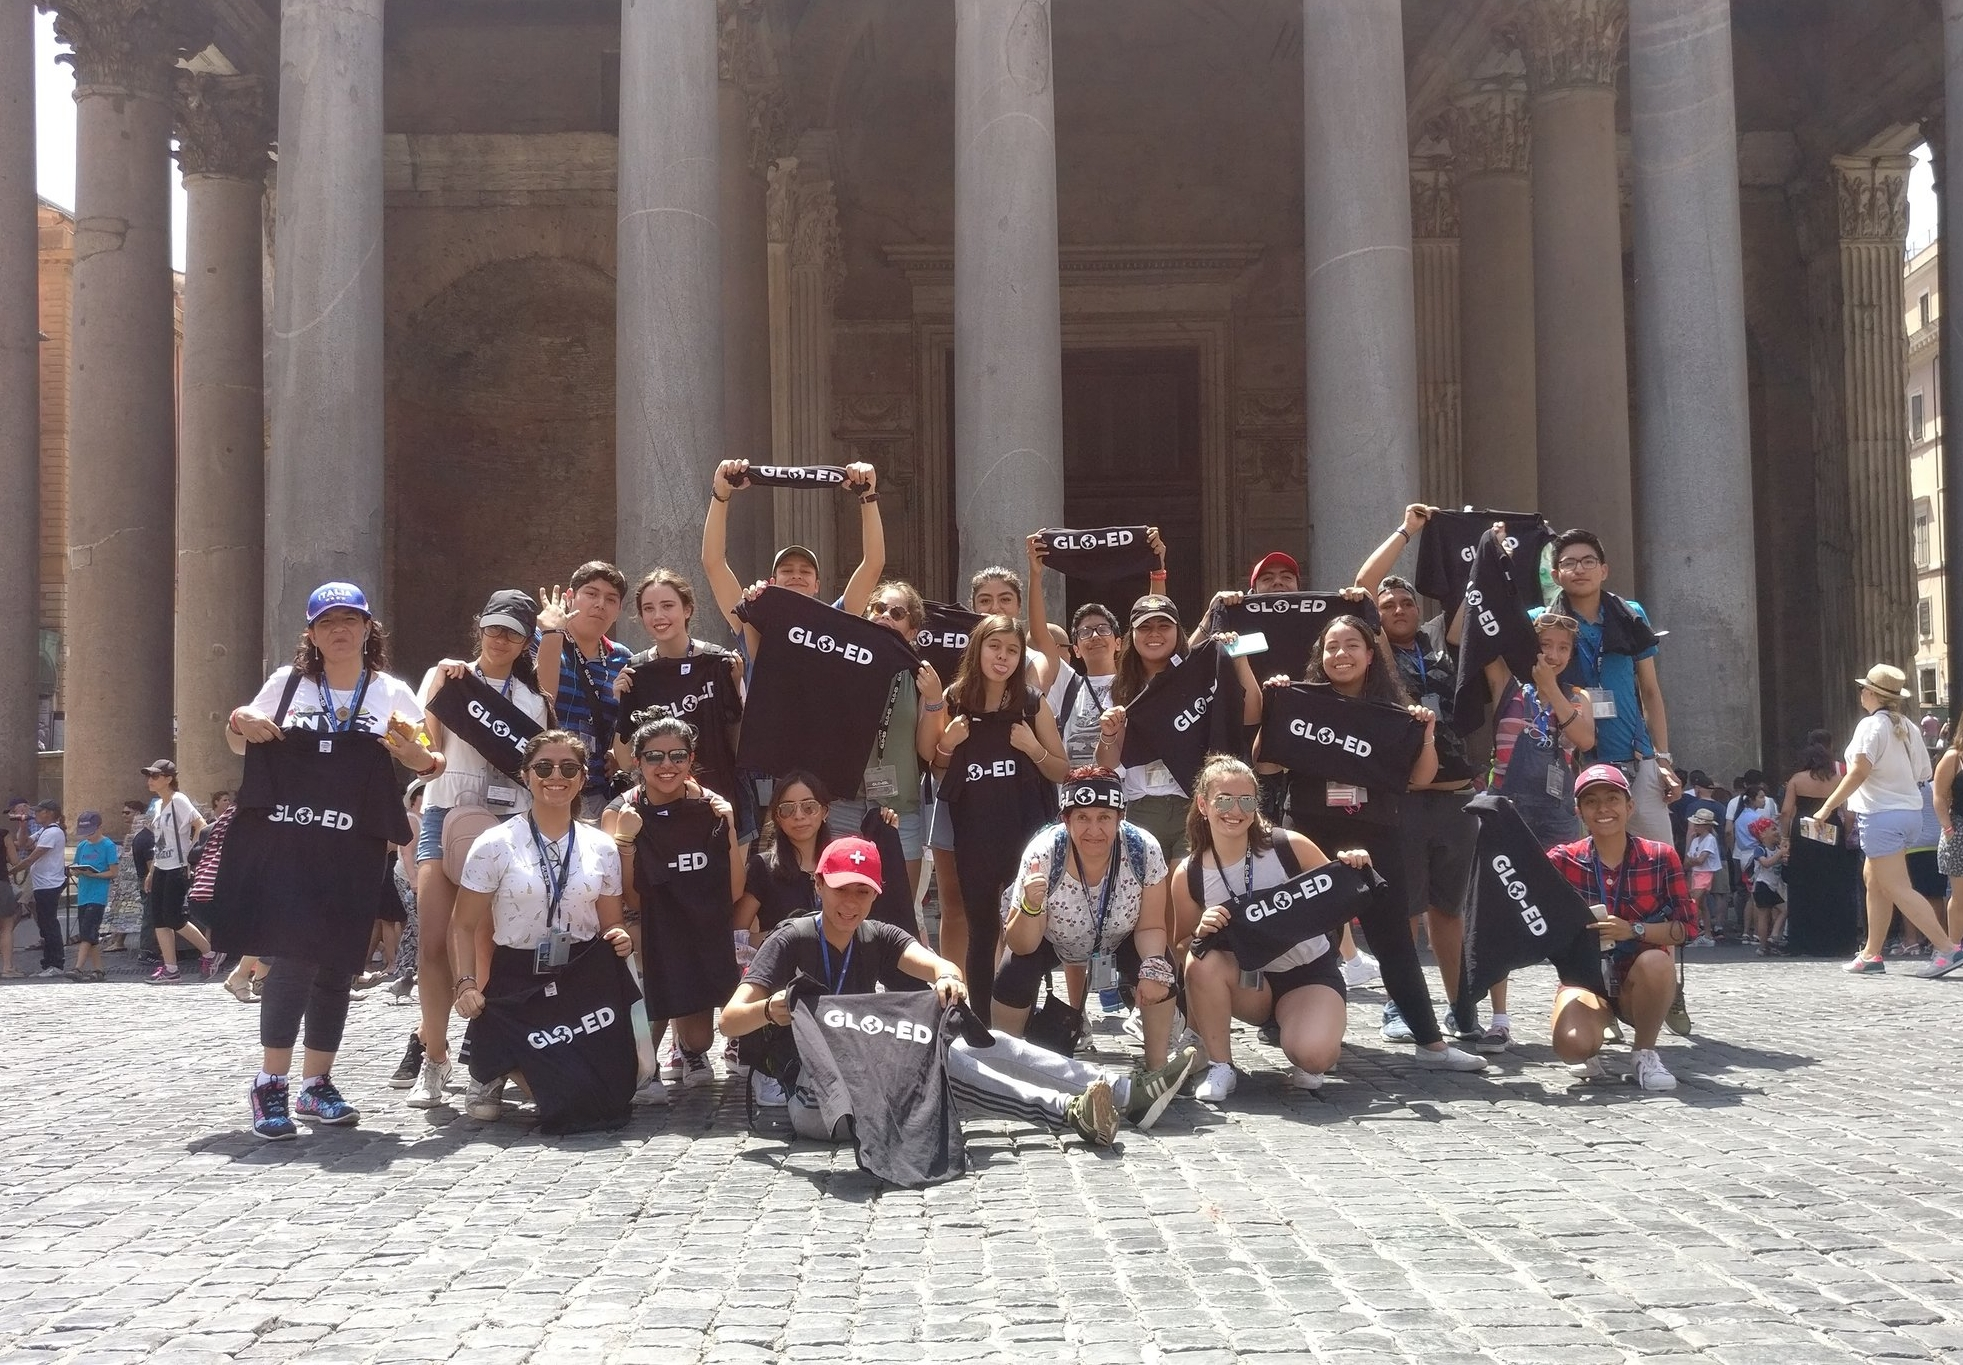 Glo-Ed group outside the Pantheon in Rome